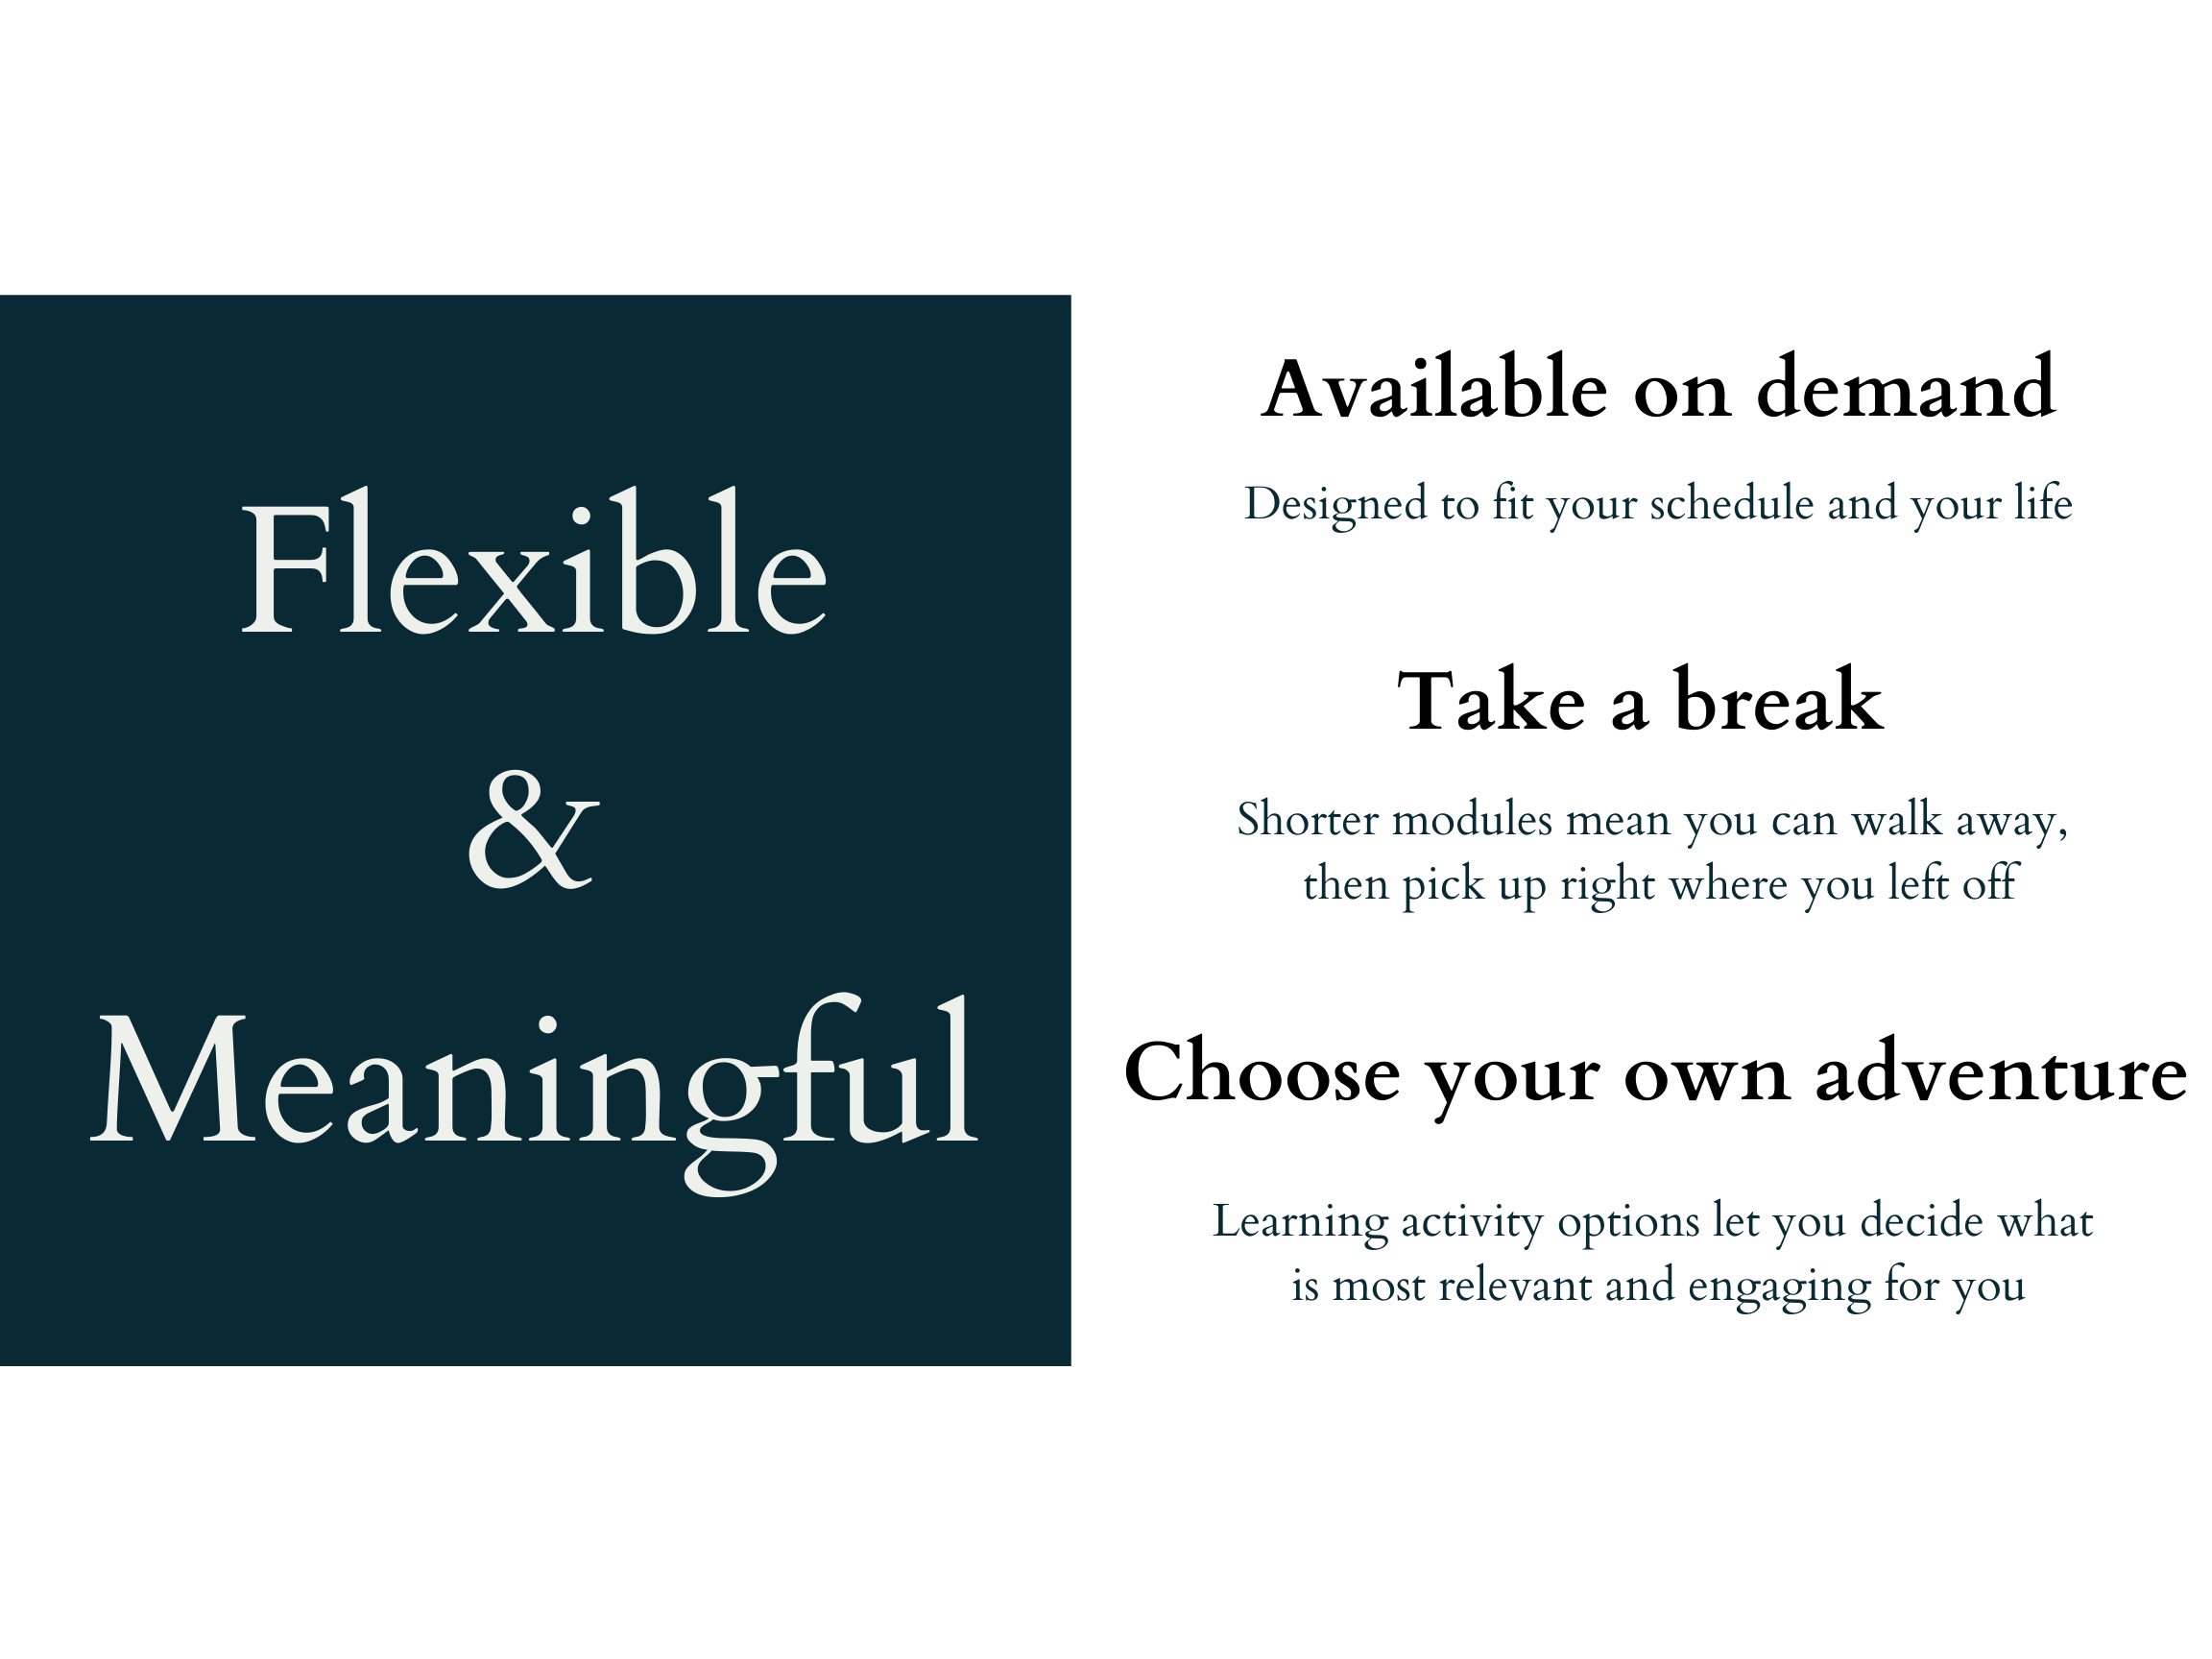 Flexible and meaningful